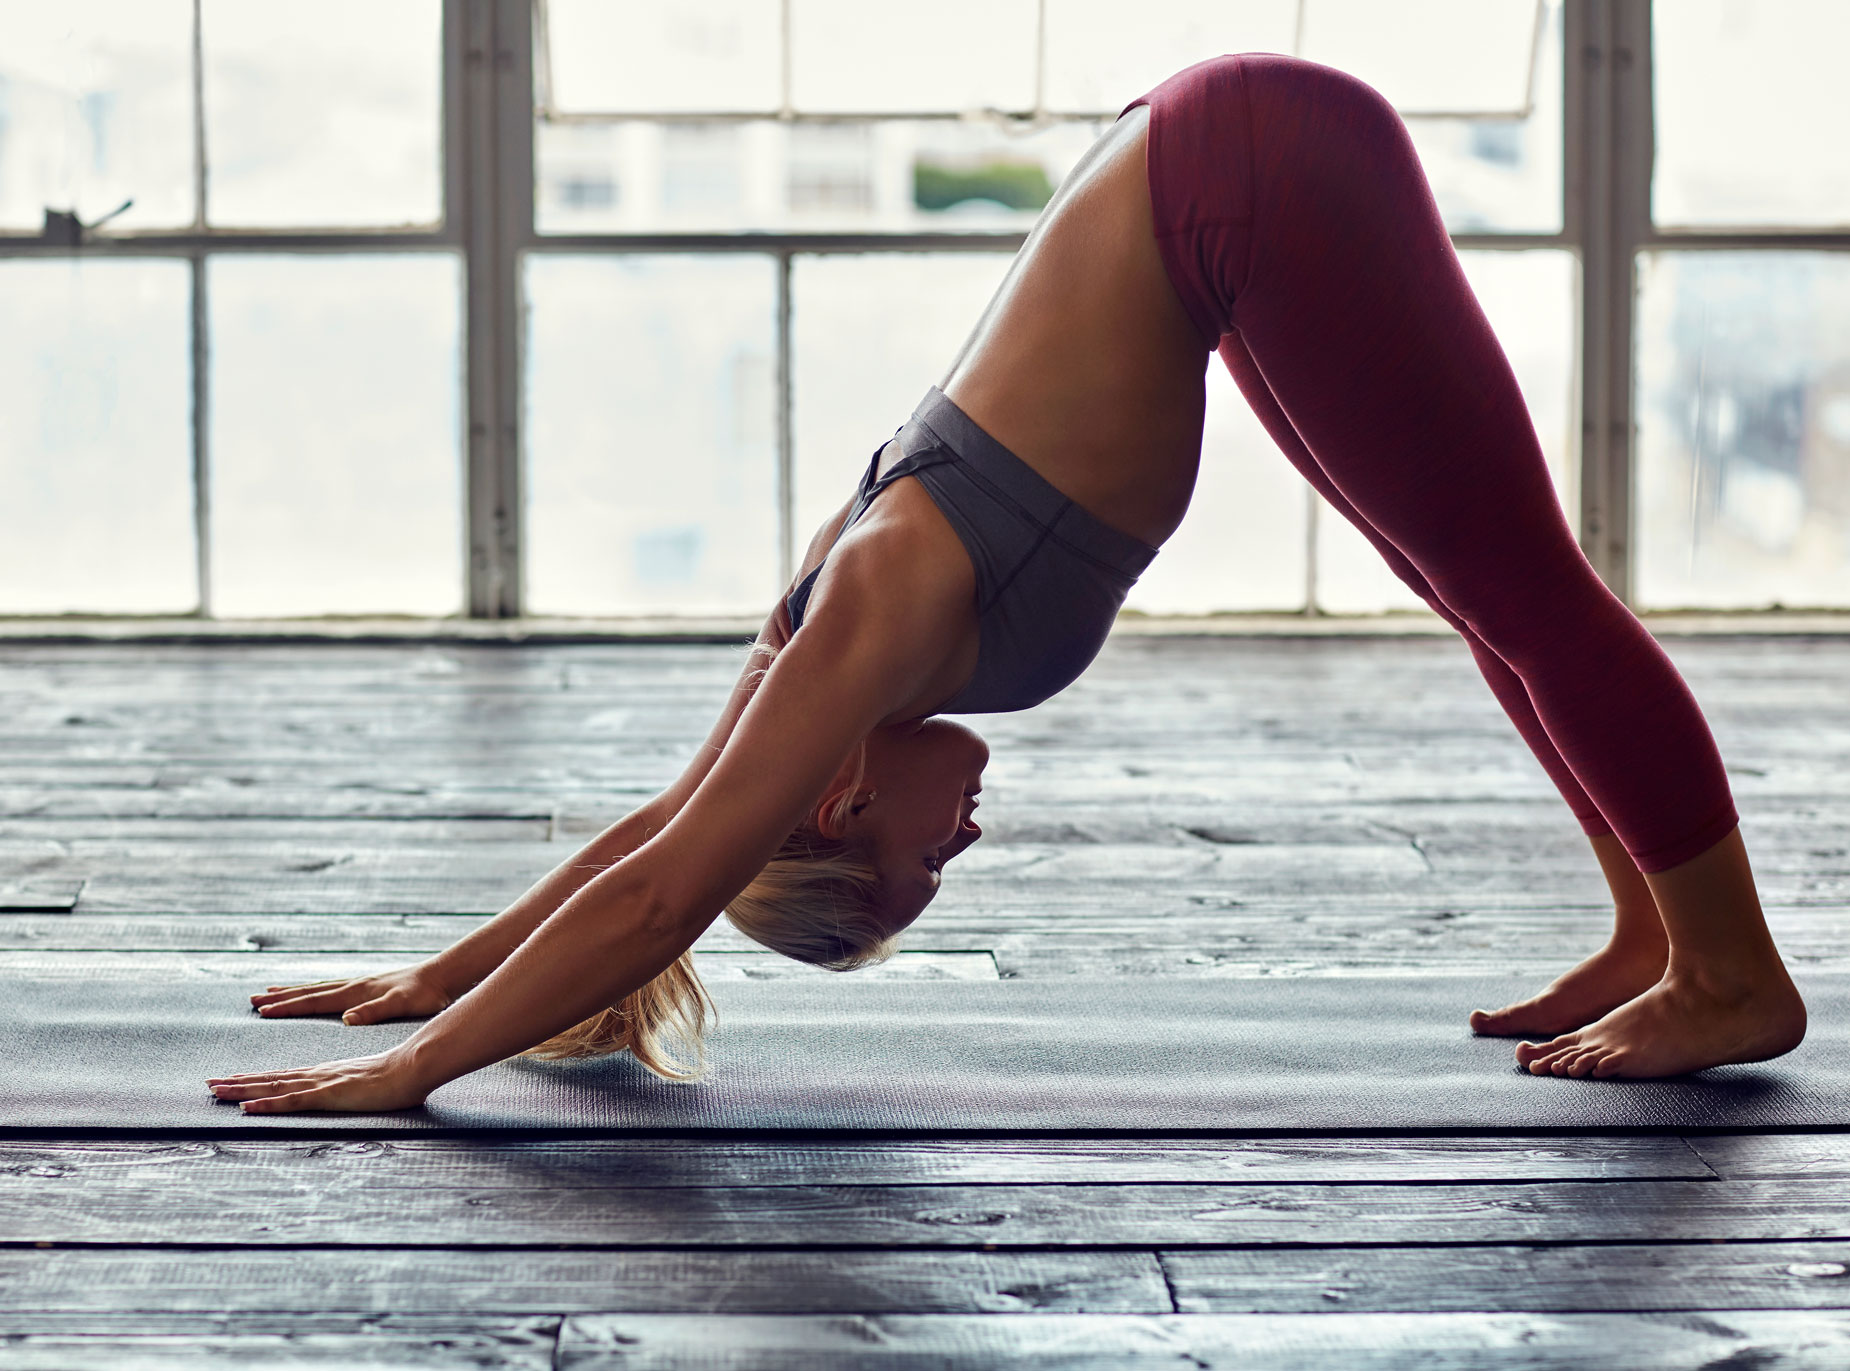 How Yoga Improves Your Sex Life